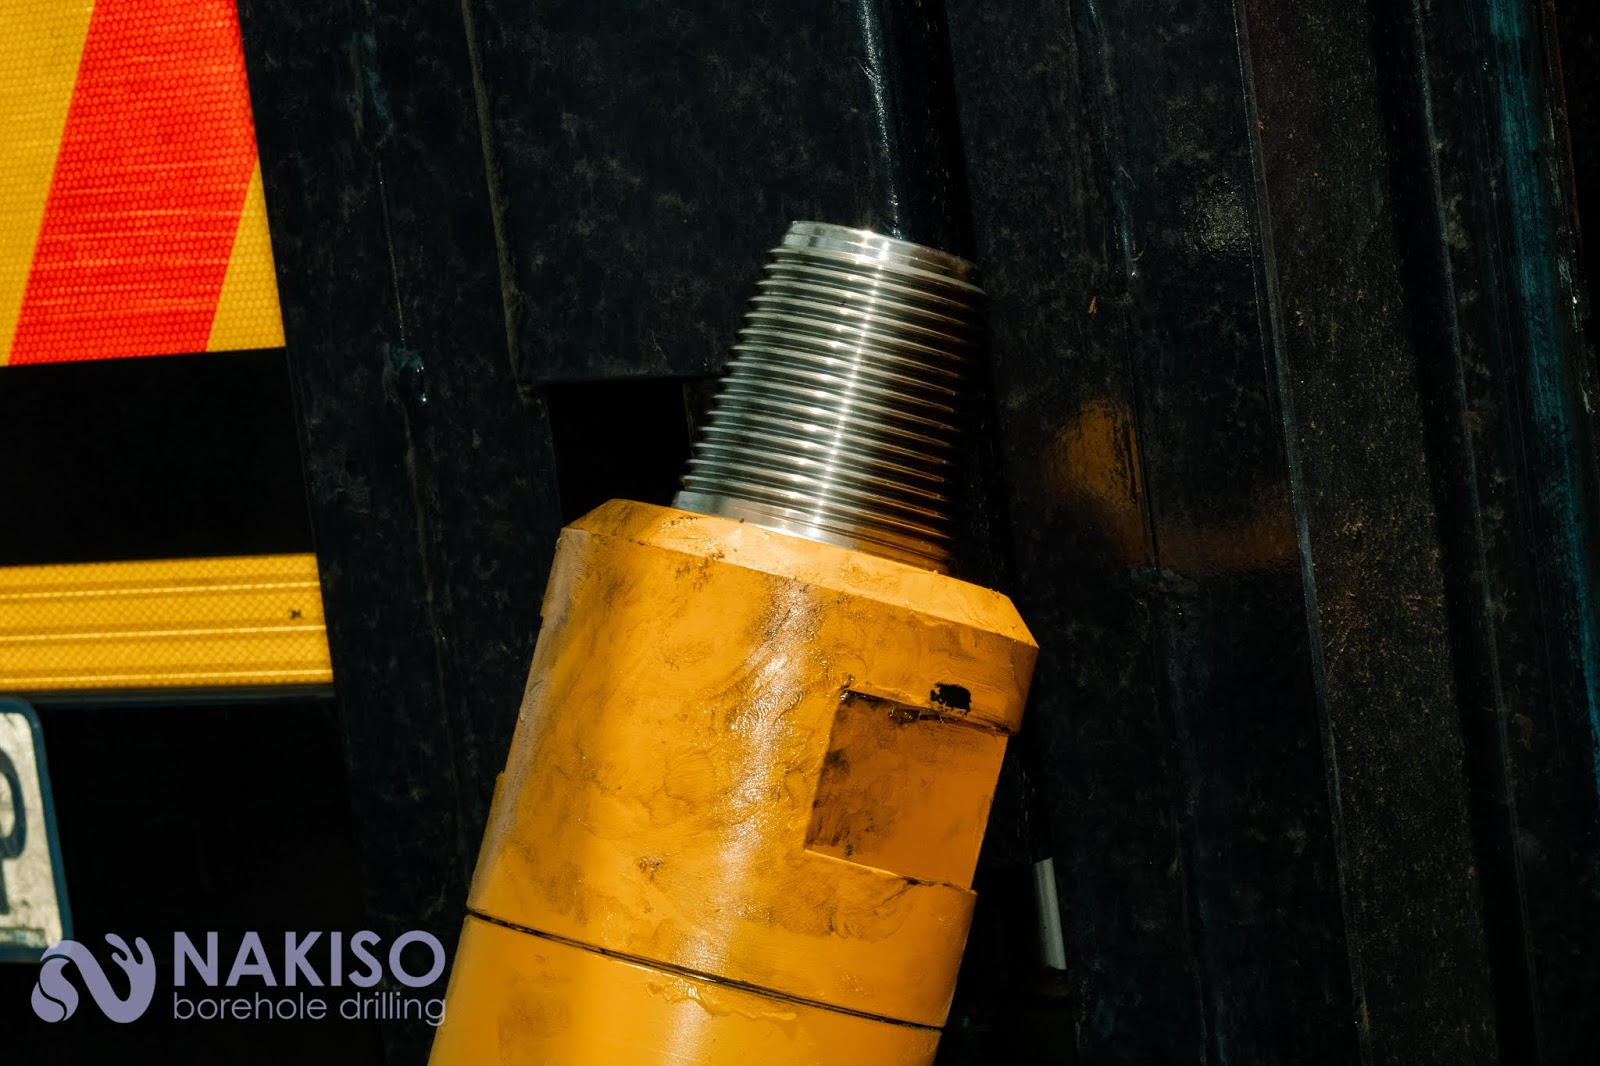 Nakiso Borehole Drilling Offers Borehole Drilling and Water Solutions Throughout Zimbabwe and The Surrounding Regions.